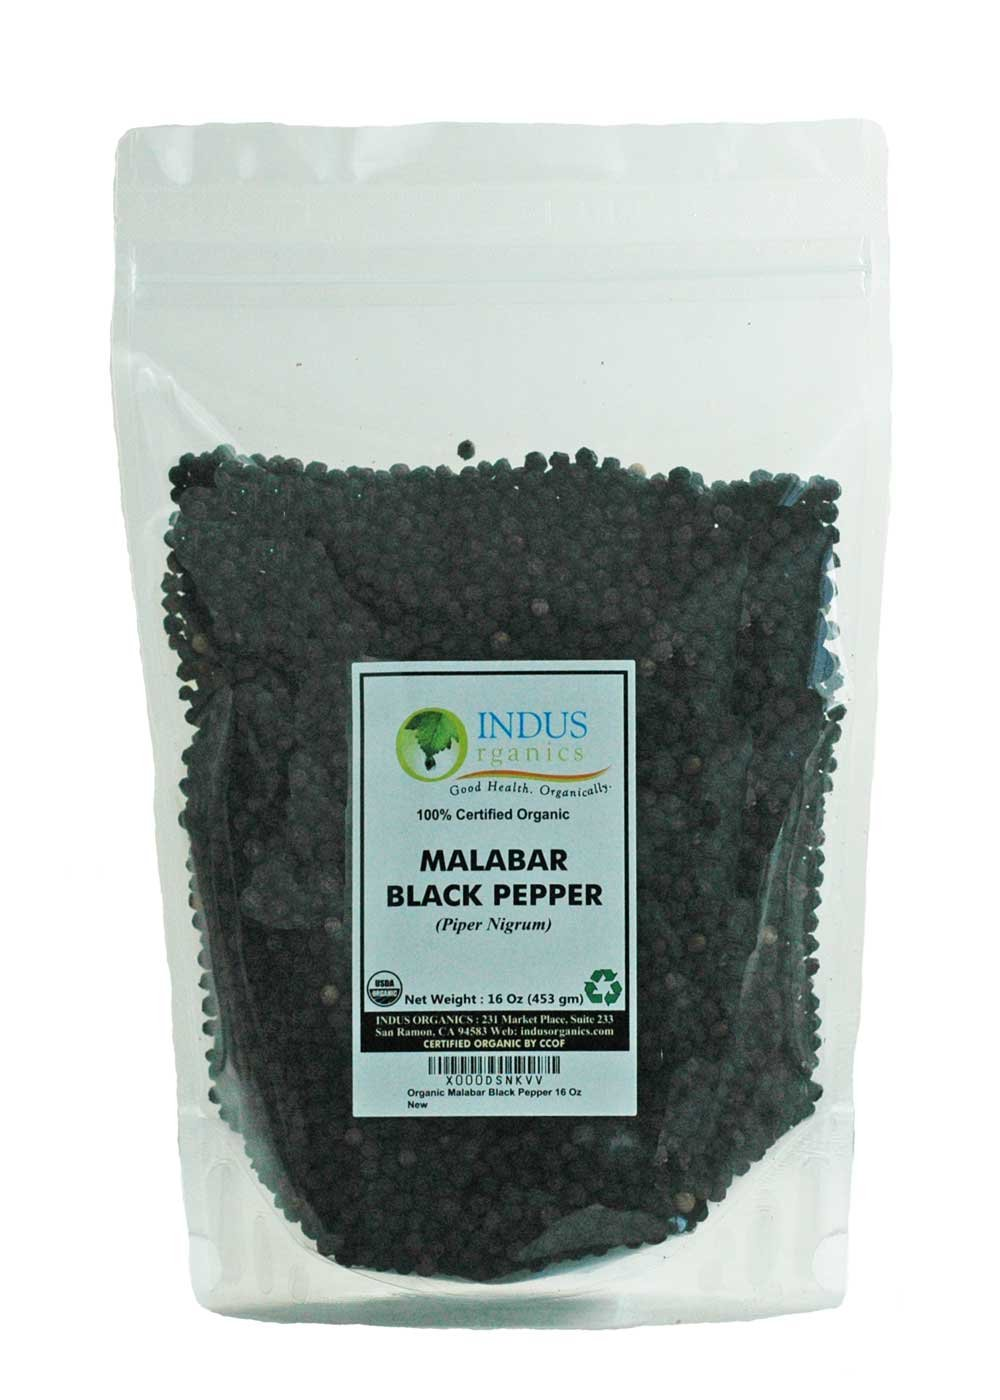 Indus Organics Malabar Black Peppercorns, Refill Bag, 1 Lb, Premium Grade, High Purity, Freshly Packed by Indus Organics